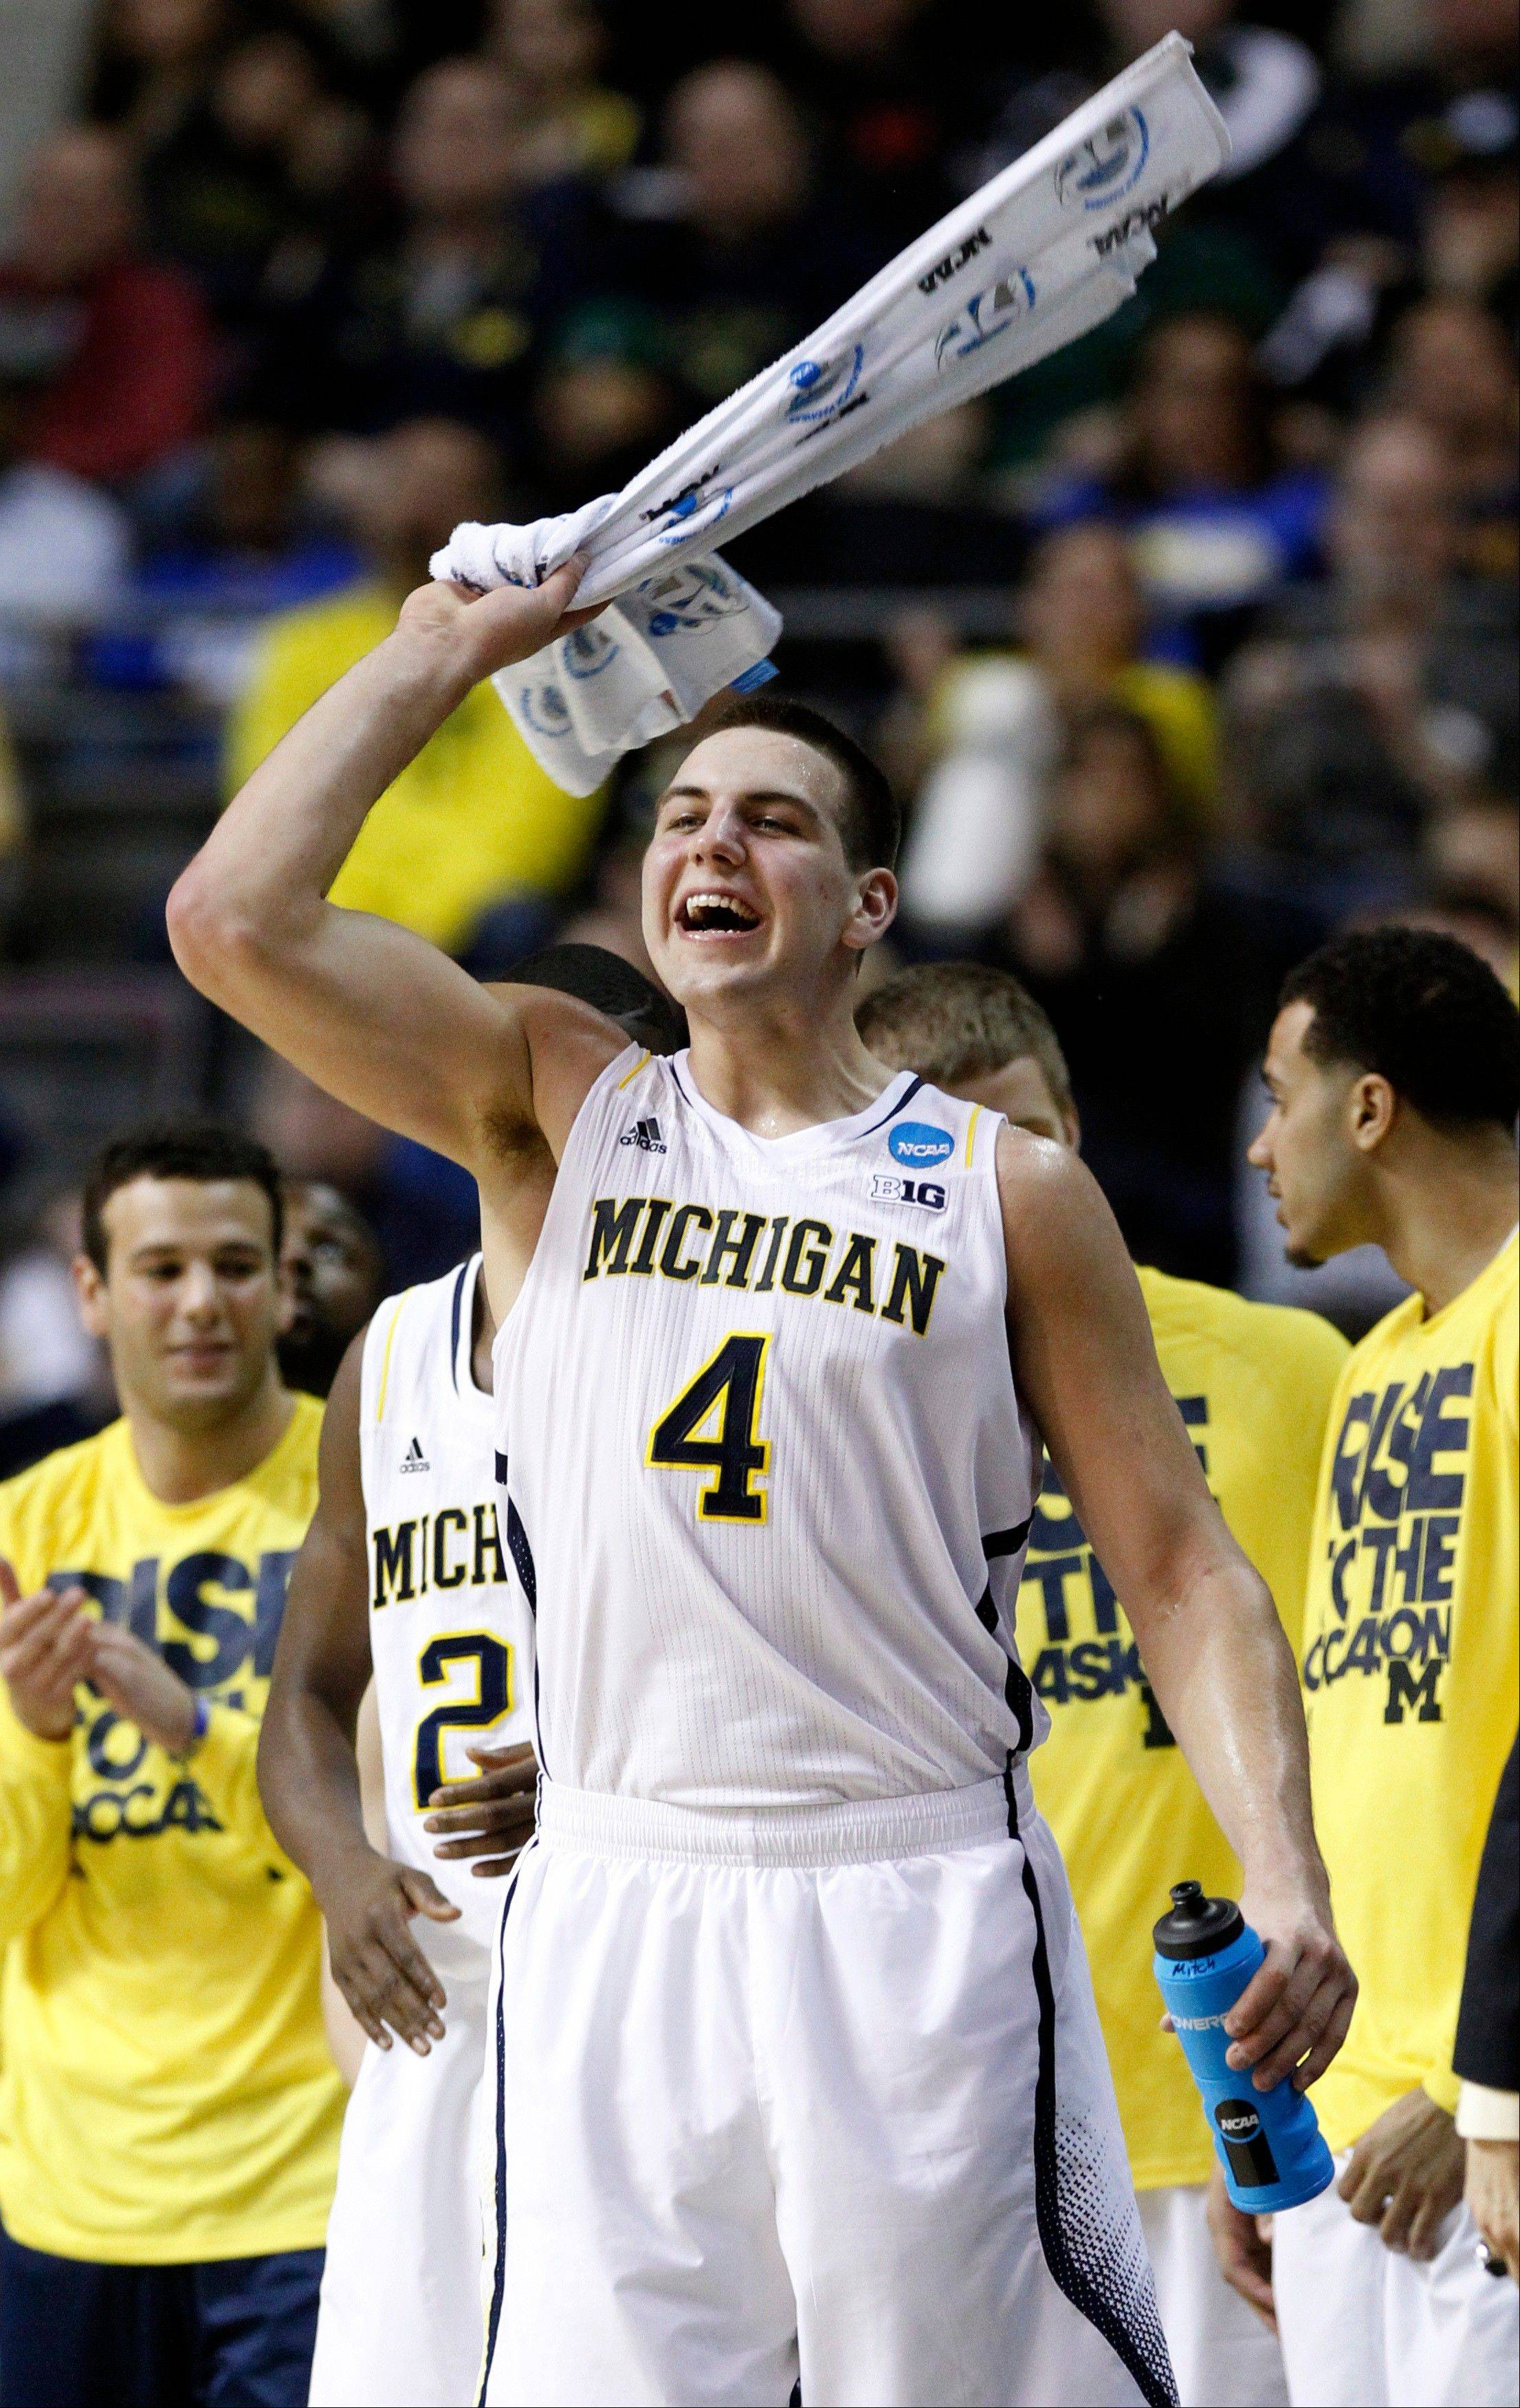 Michigan forward Mitch McGary (4) cheers on his teammates in the final minutes of their 71-56 win over South Dakota State in a second-round game of the NCAA men's college basketball tournament Thursday, March 21, 2013, in Auburn Hills, Mich.